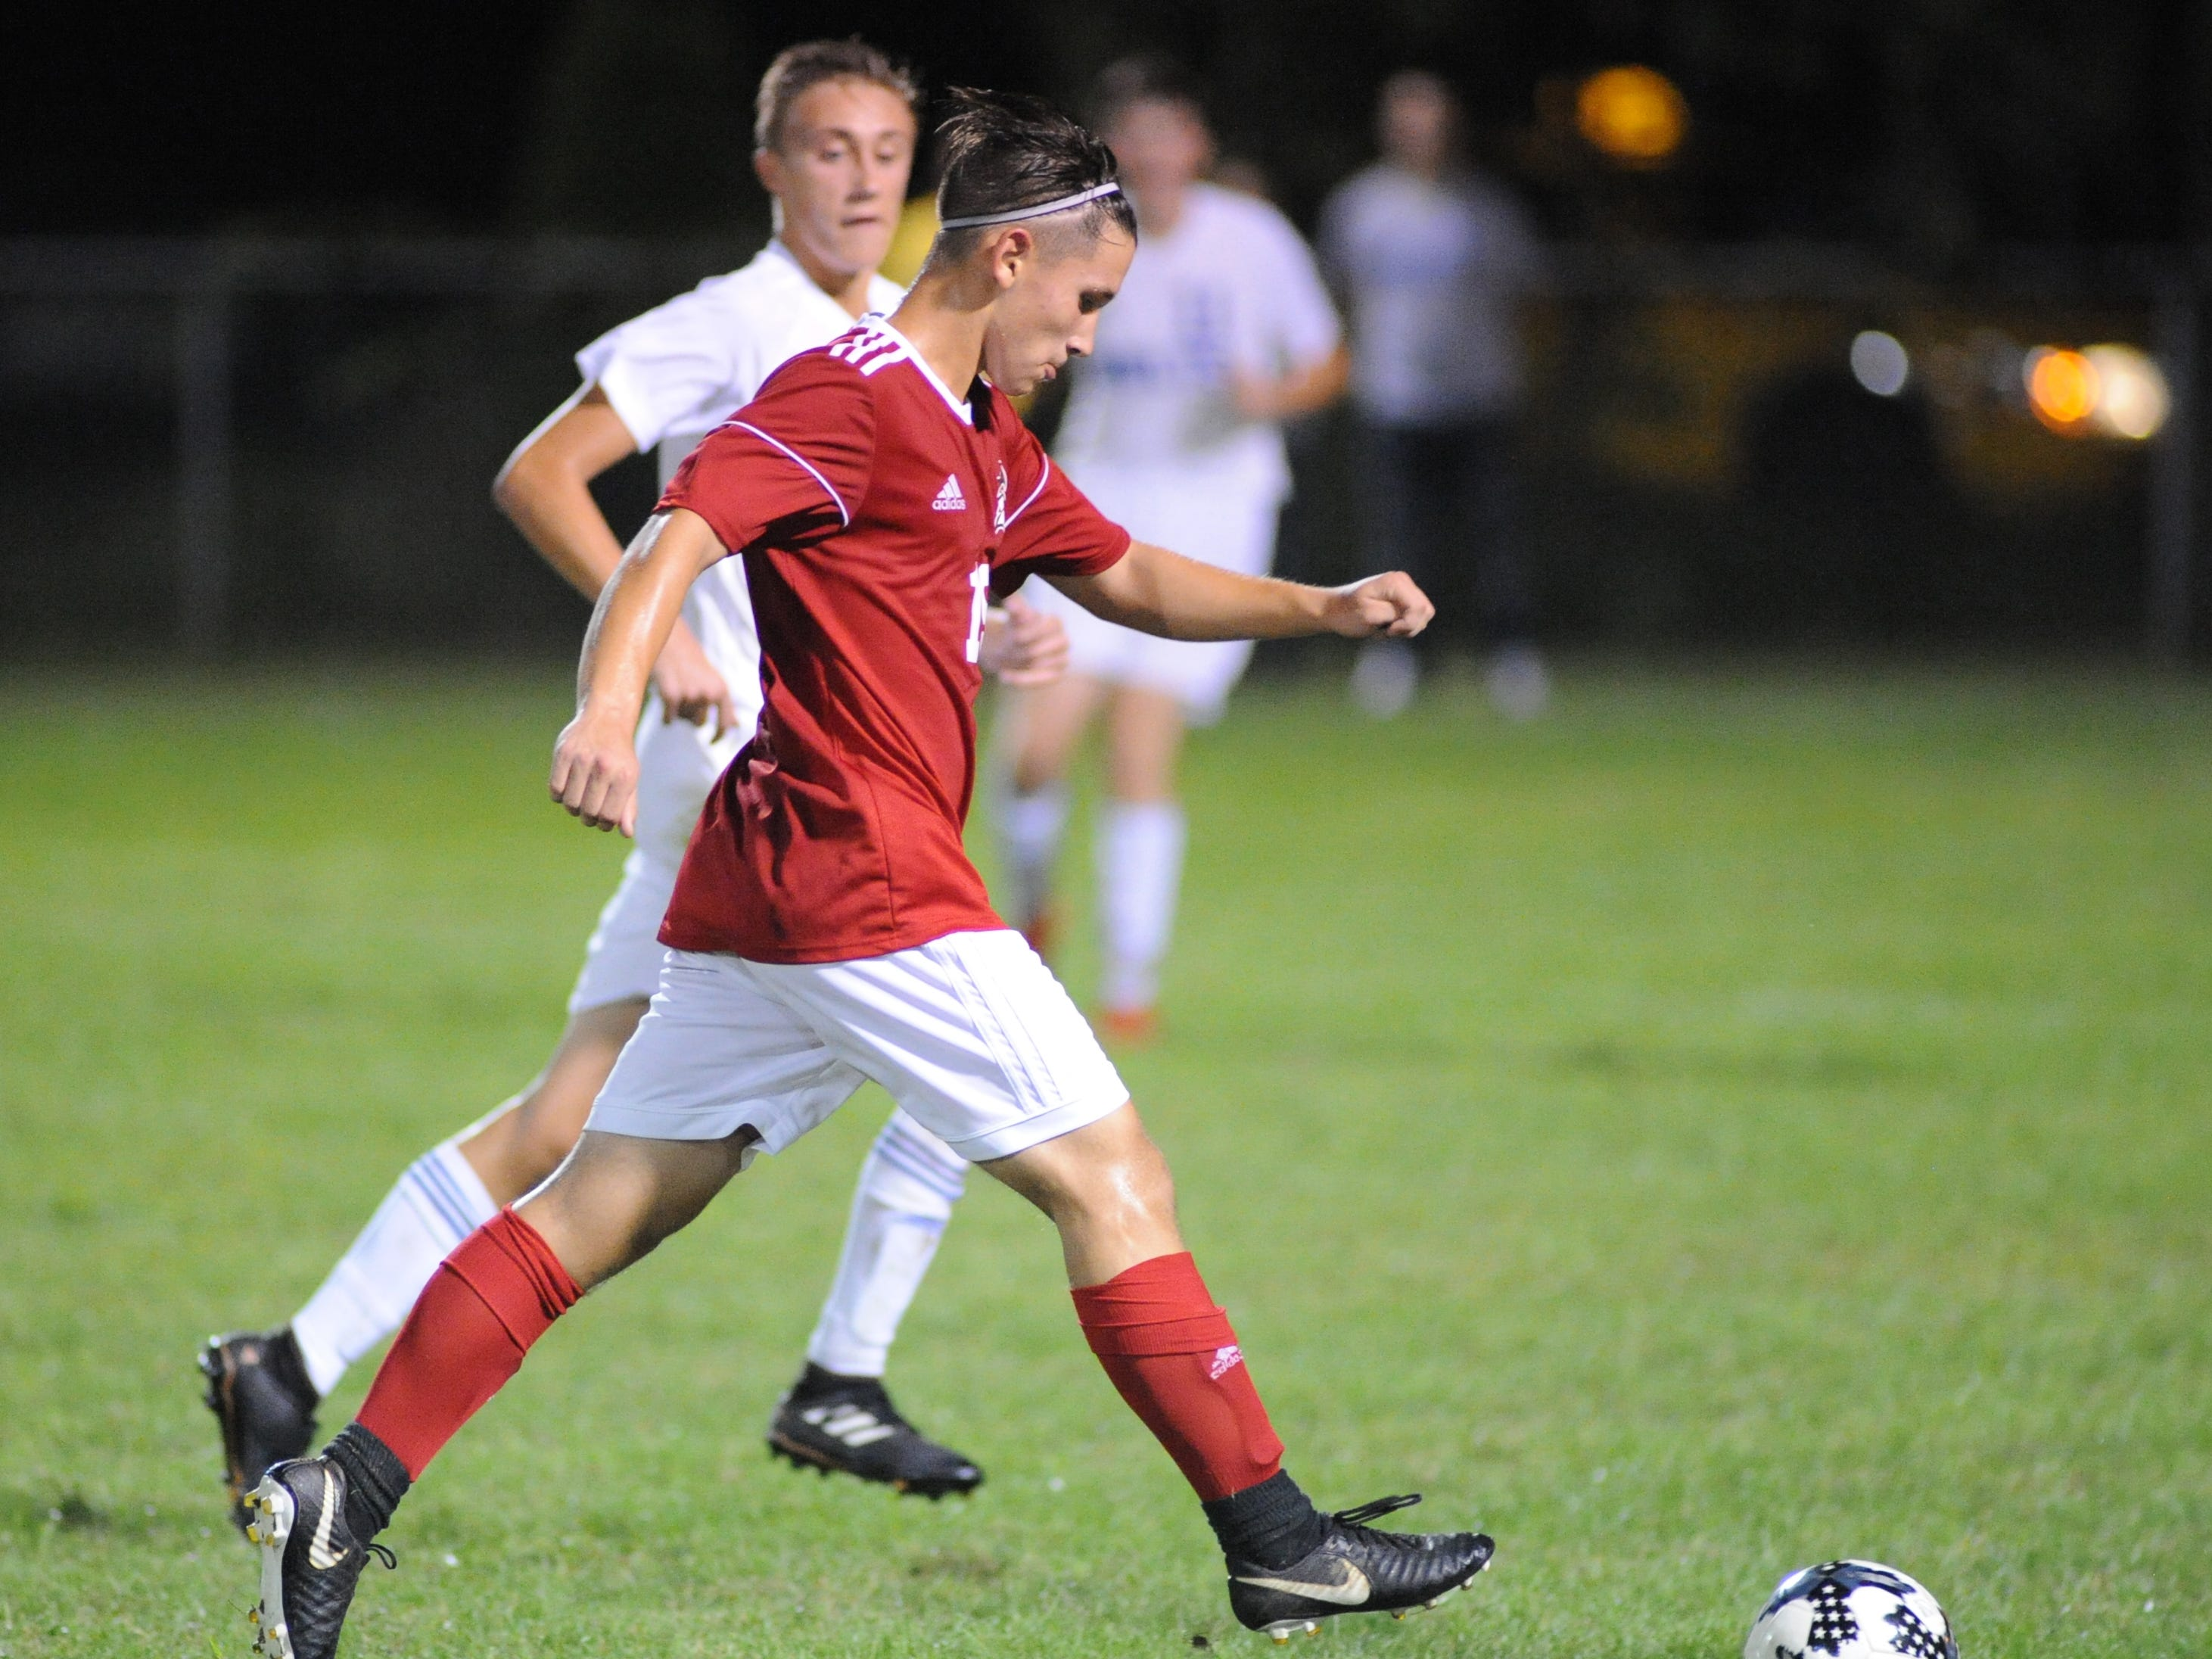 Vineland's David Singer moves the ball during a boys soccer game against Millville at Romano Sports Complex in Vineland, Monday, Sept. 17, 2018.